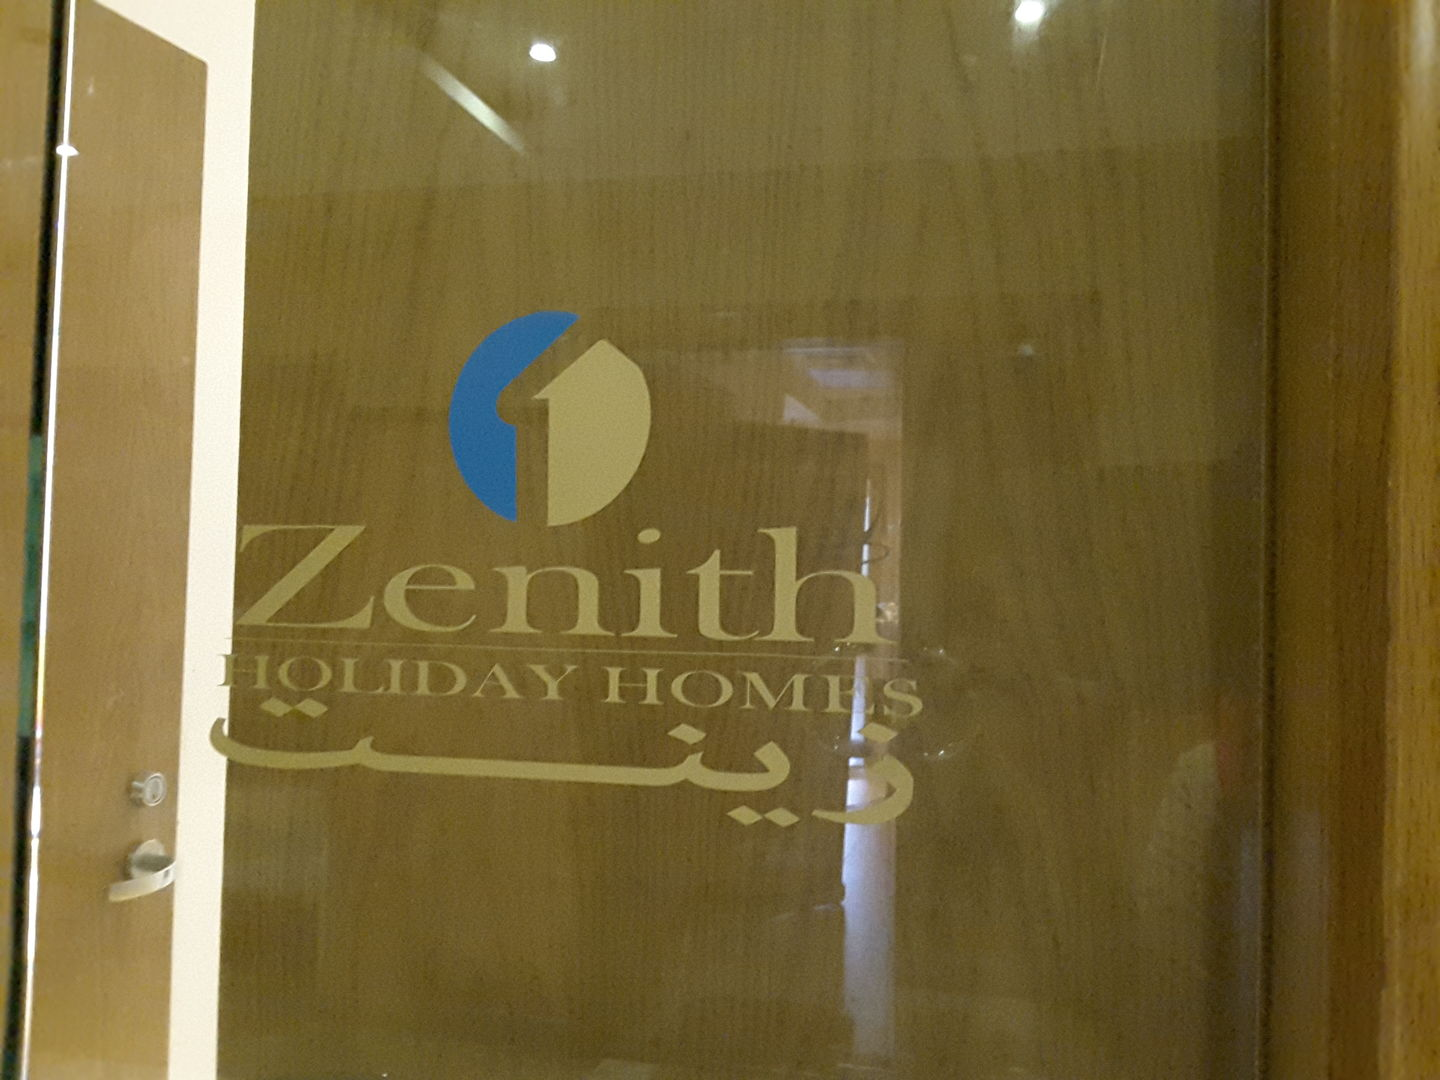 HiDubai-business-zenith-holiday-homes-rental-housing-real-estate-real-estate-agencies-tecom-al-thanyah-1-dubai-2